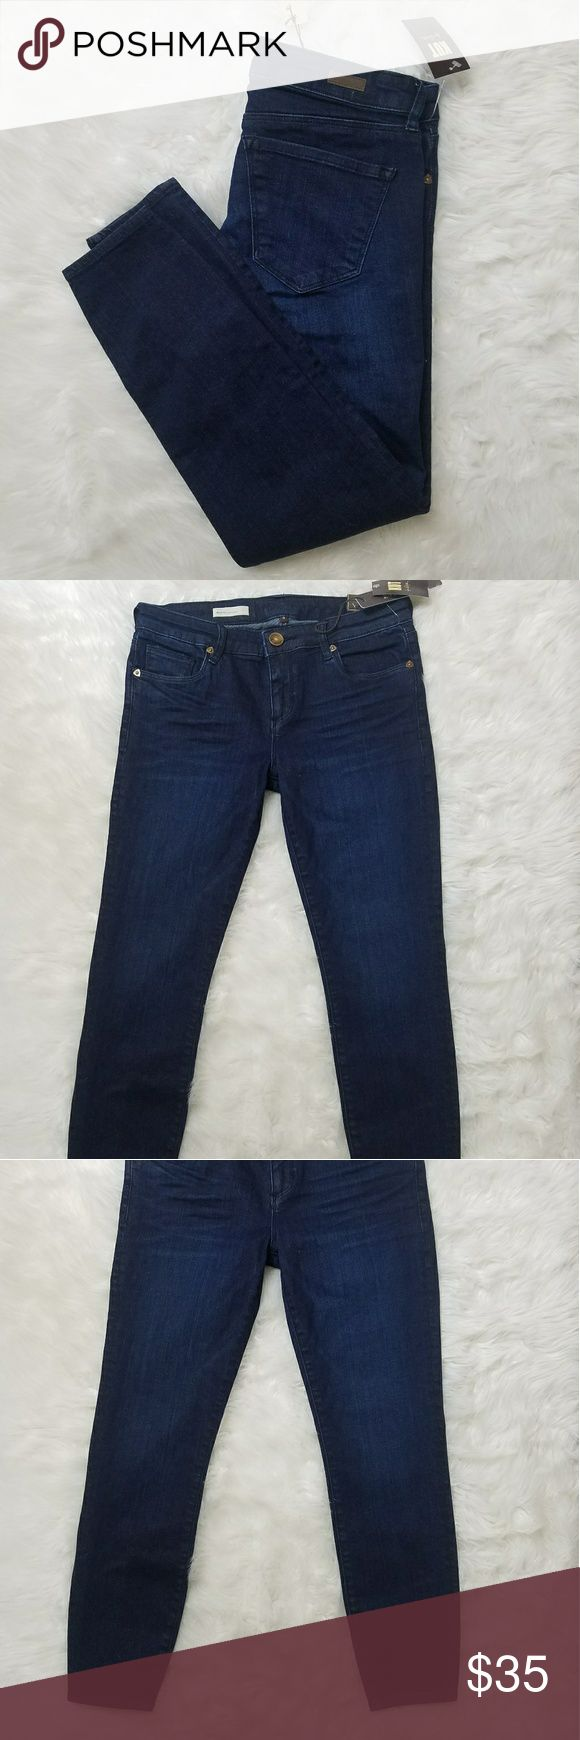 Kut from the kloth Bridget dark wash skinny jean 4 Kut from the kloth women's dark wash Bridget cropped skinny jeans size for new with tags MSRP $99 91% cotton 7% polyester 2% spandex Kut from the Kloth Jeans Skinny